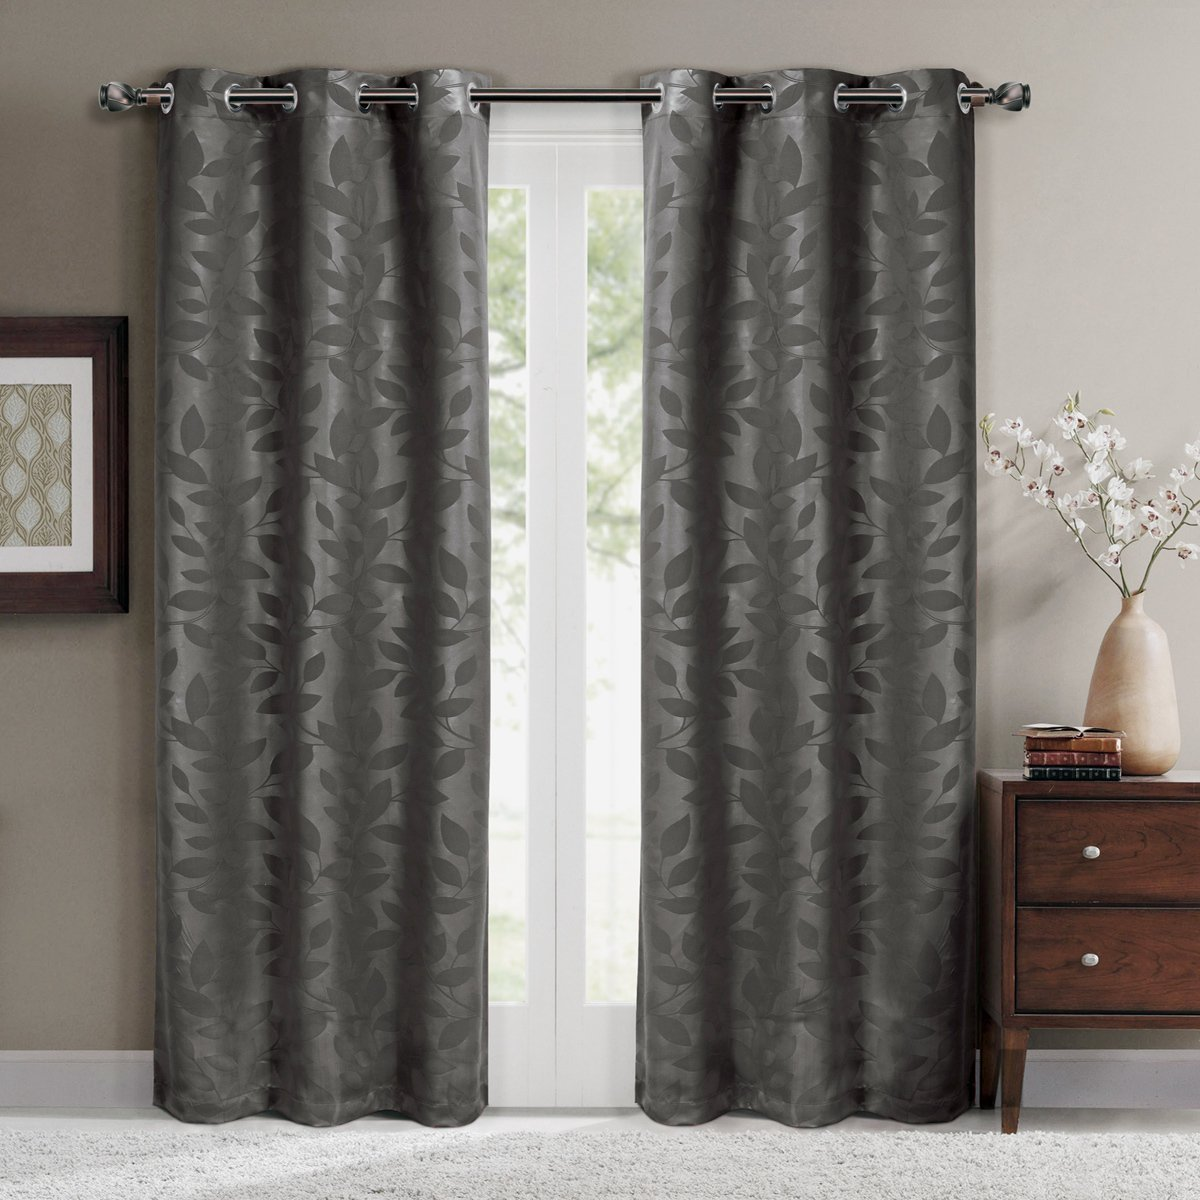 Sound Blocking Curtains Sound Shield Curtains Noise Blocking Thermal Insulated Blackout